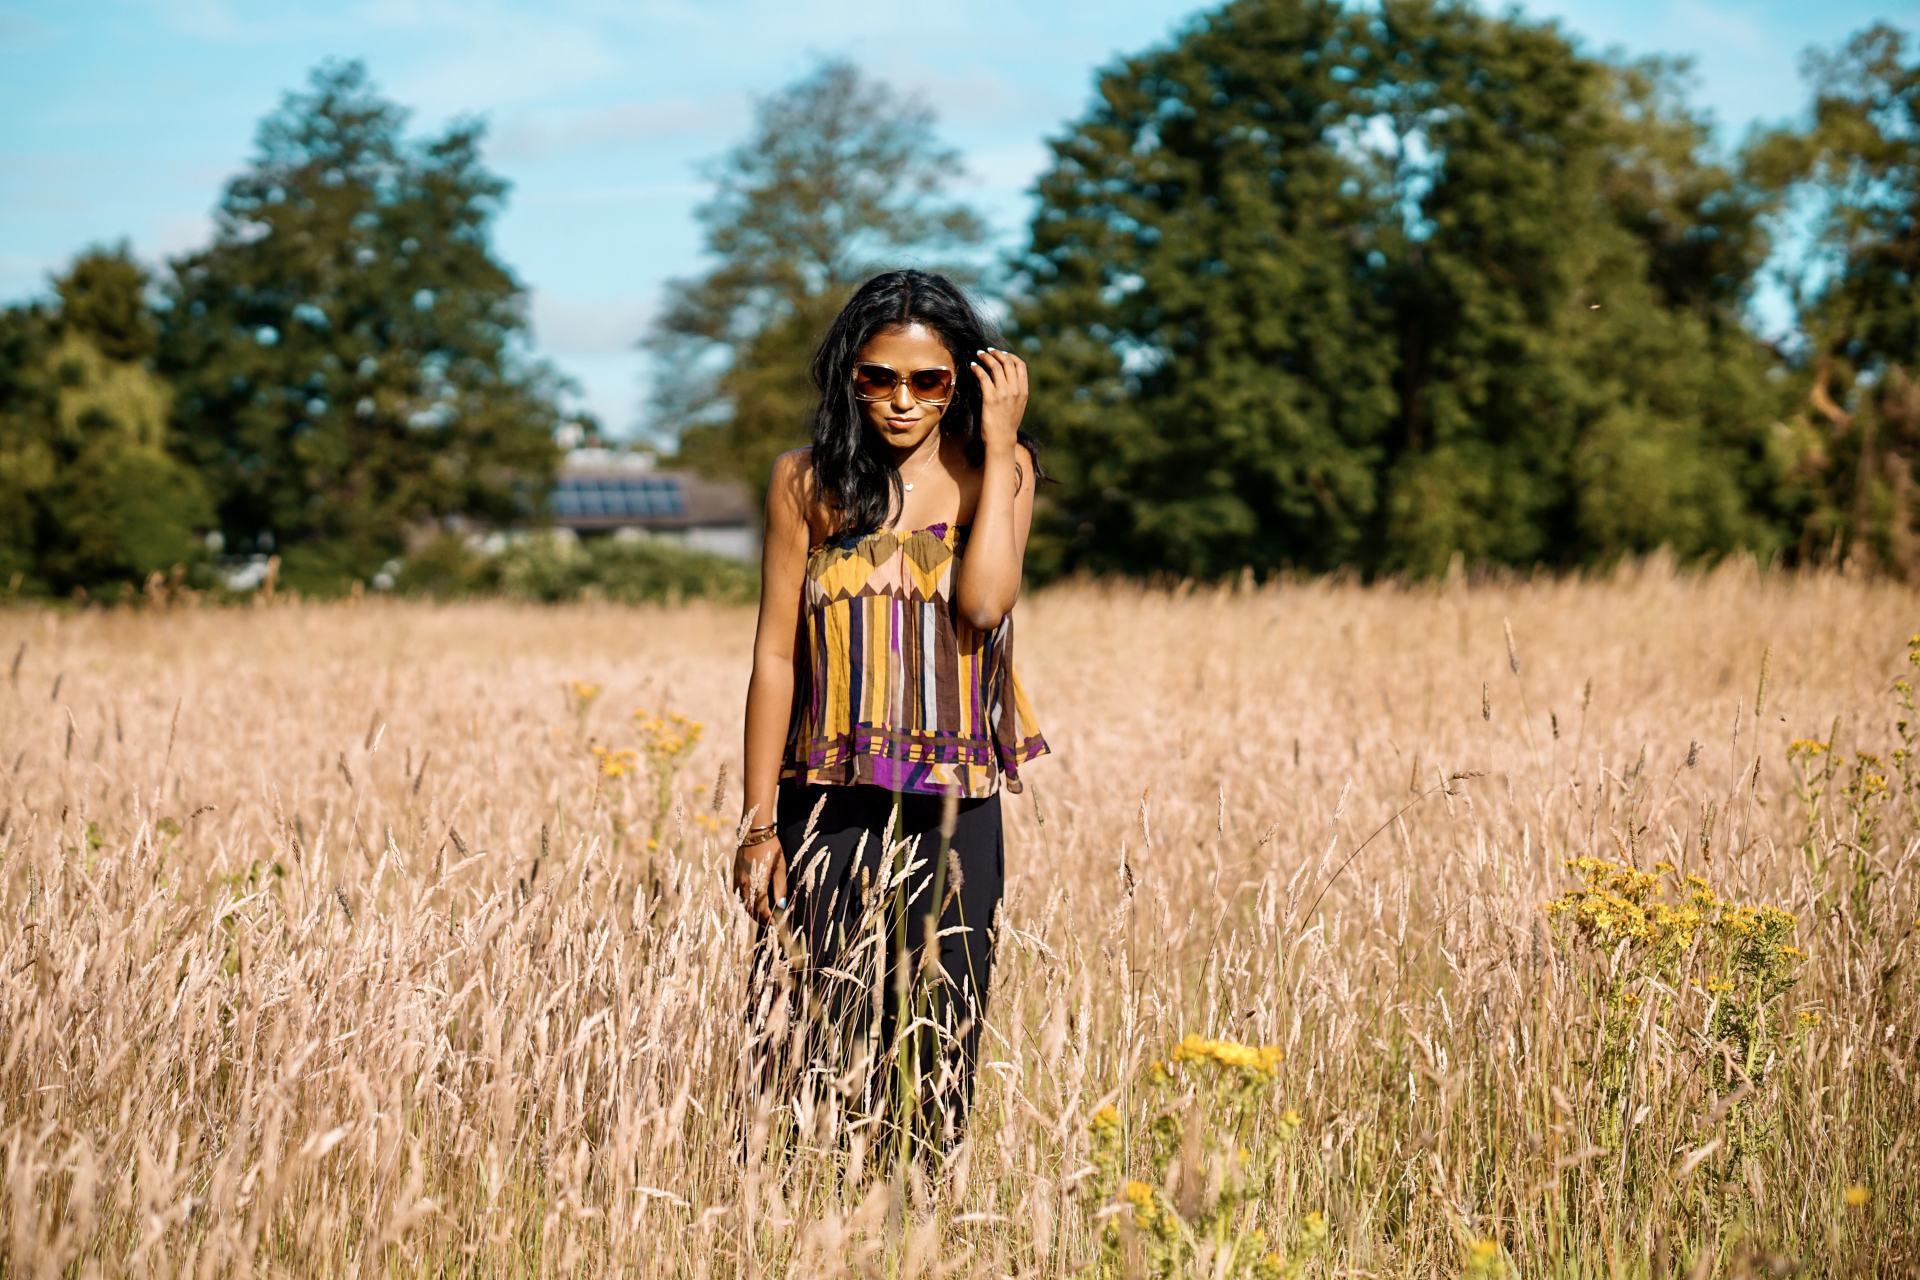 Sachini standing in a golden wheat field wearing a colourful ba-sh top and black trousers